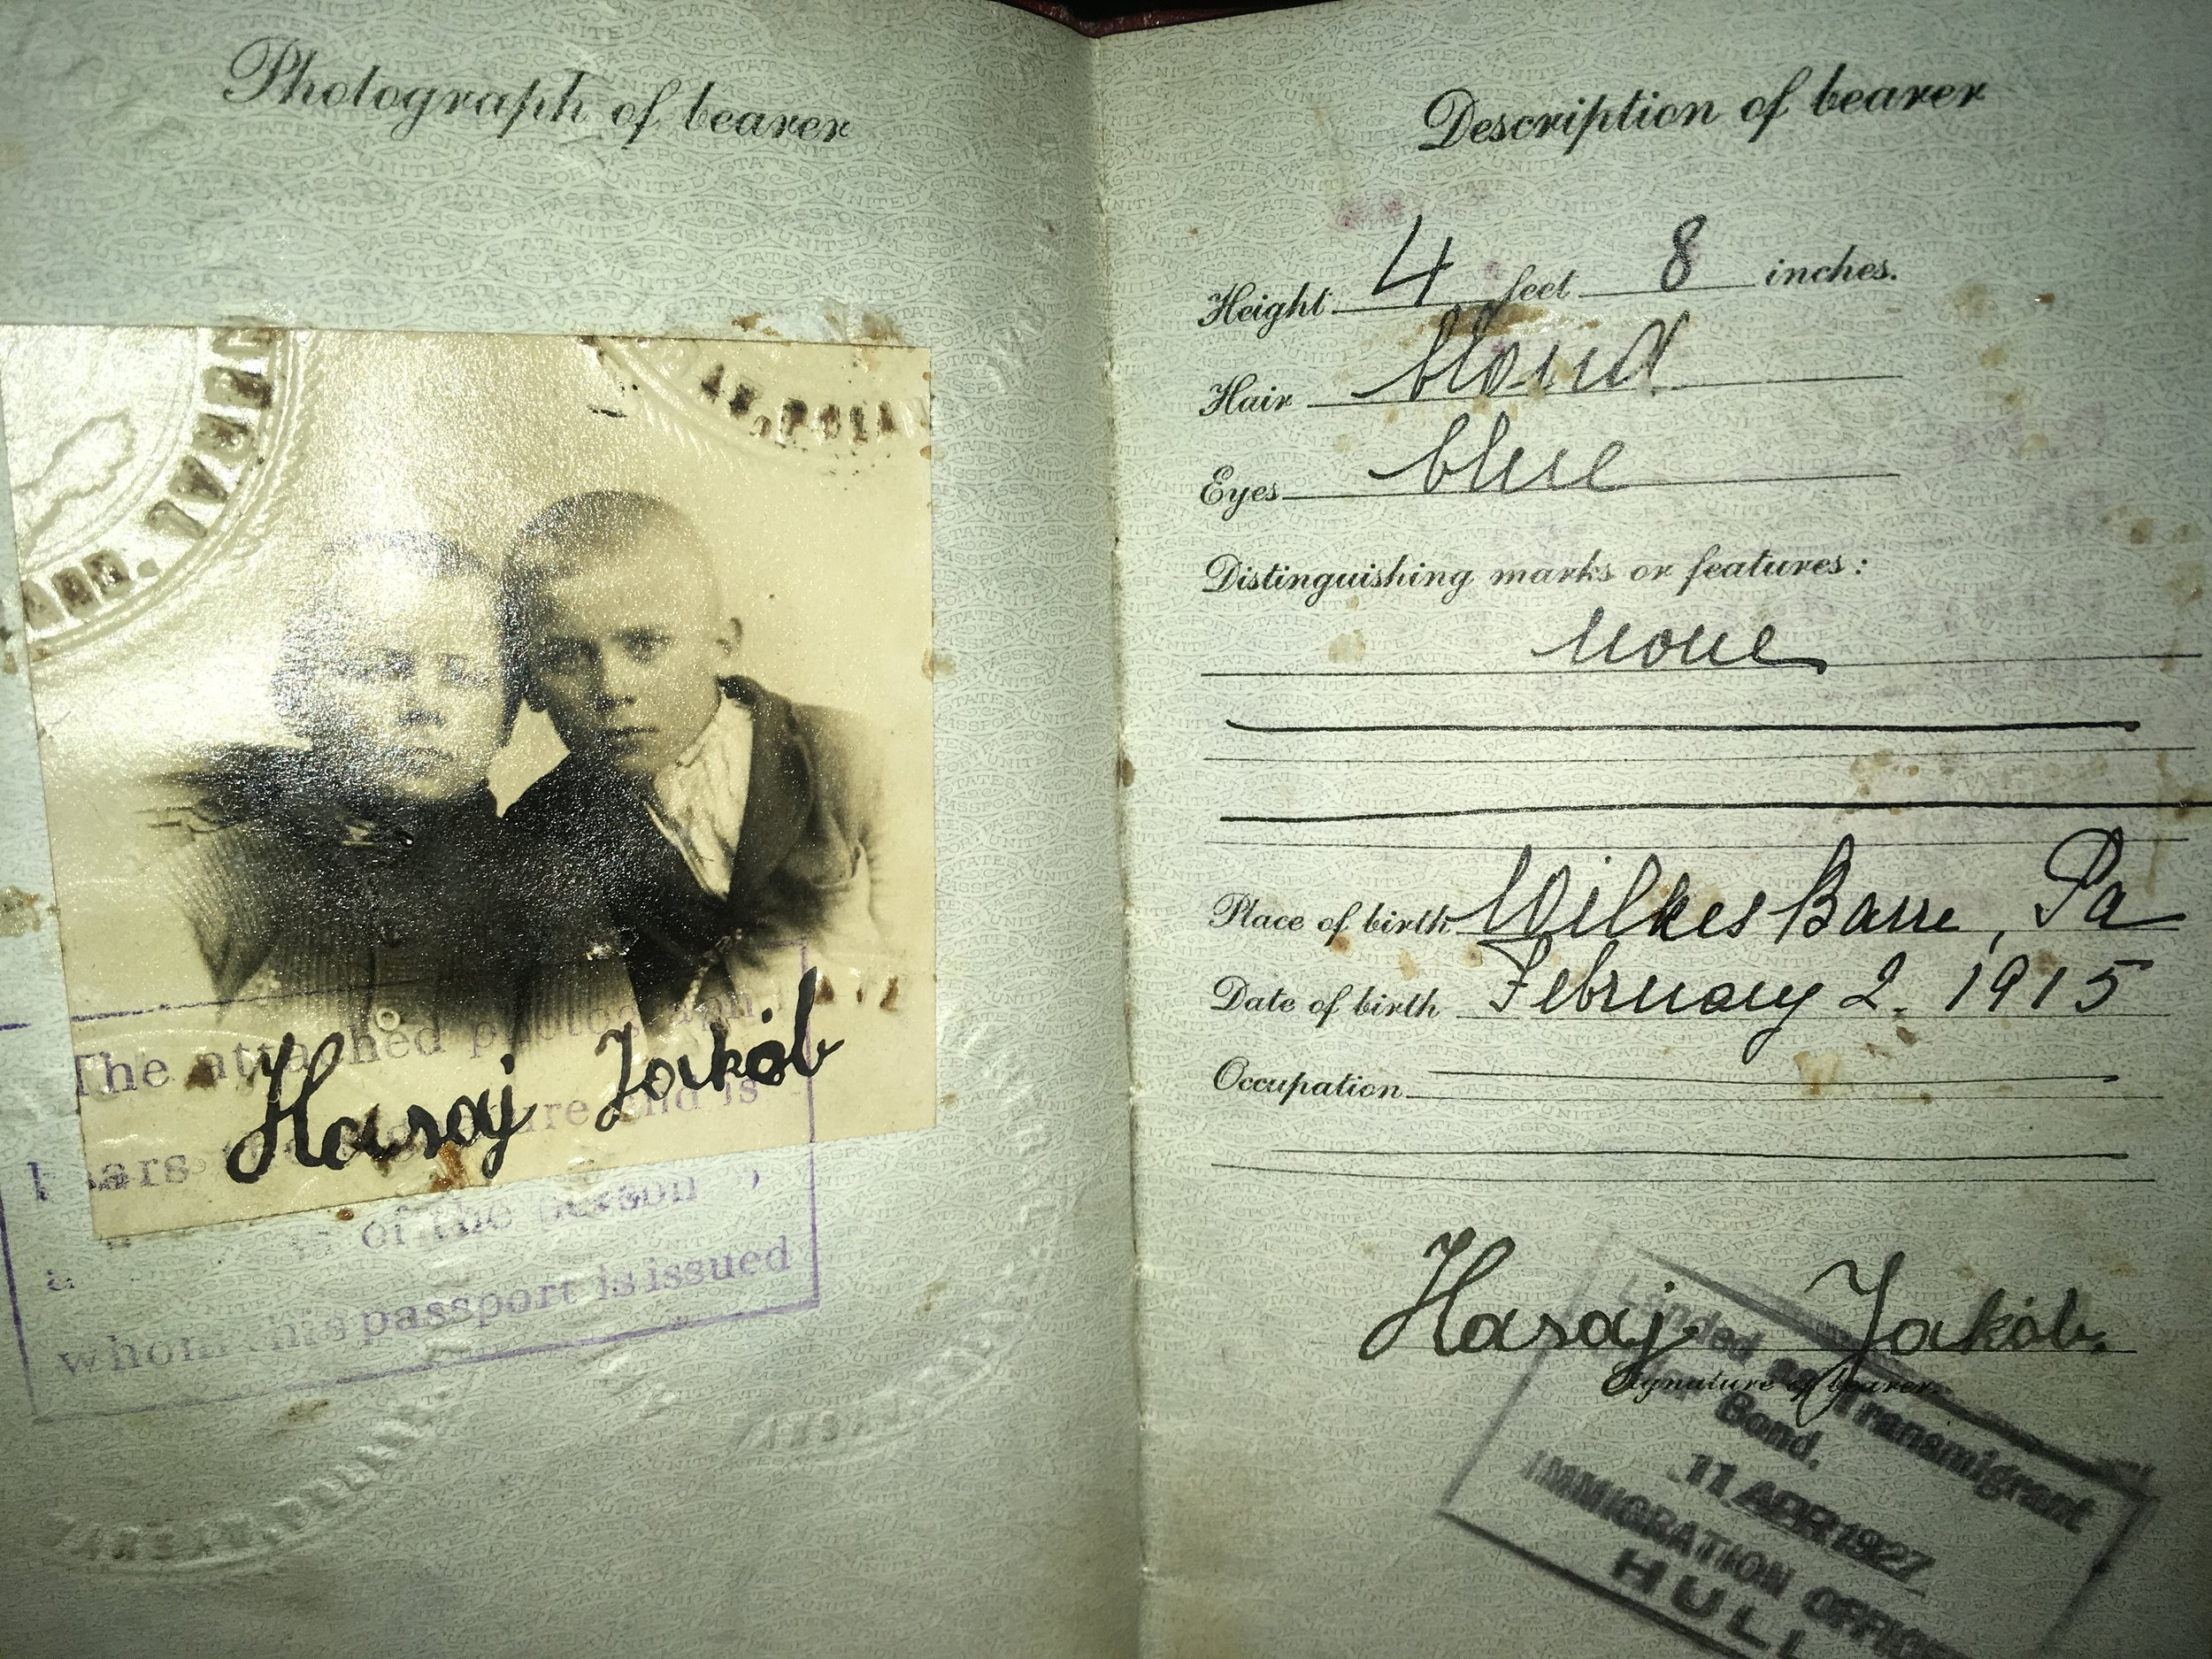 Grandfather Polish Passport Photo.JPG